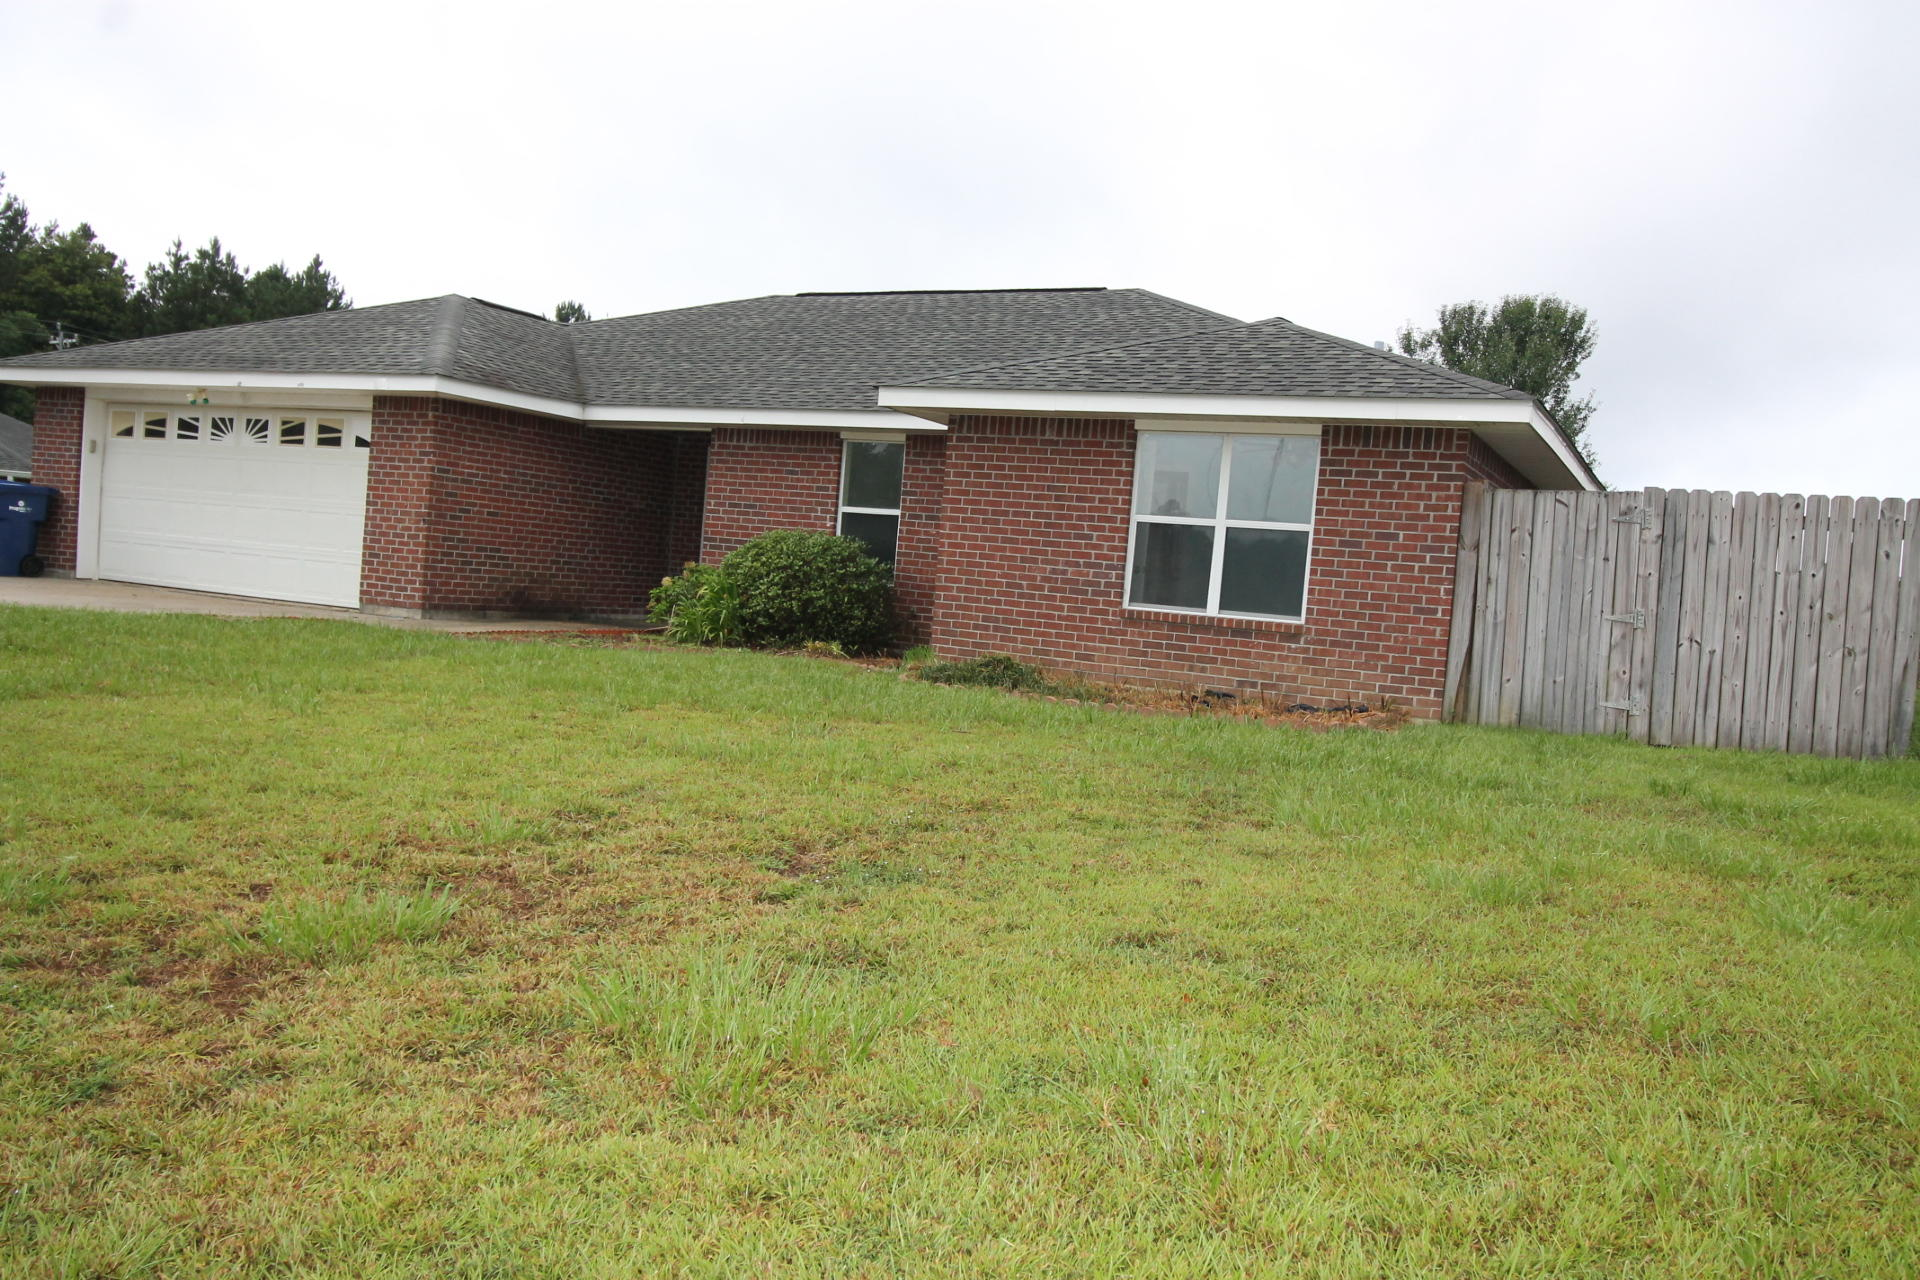 DeRidder home for sale, 1703 Maplewood, DeRidder LA - $159,900